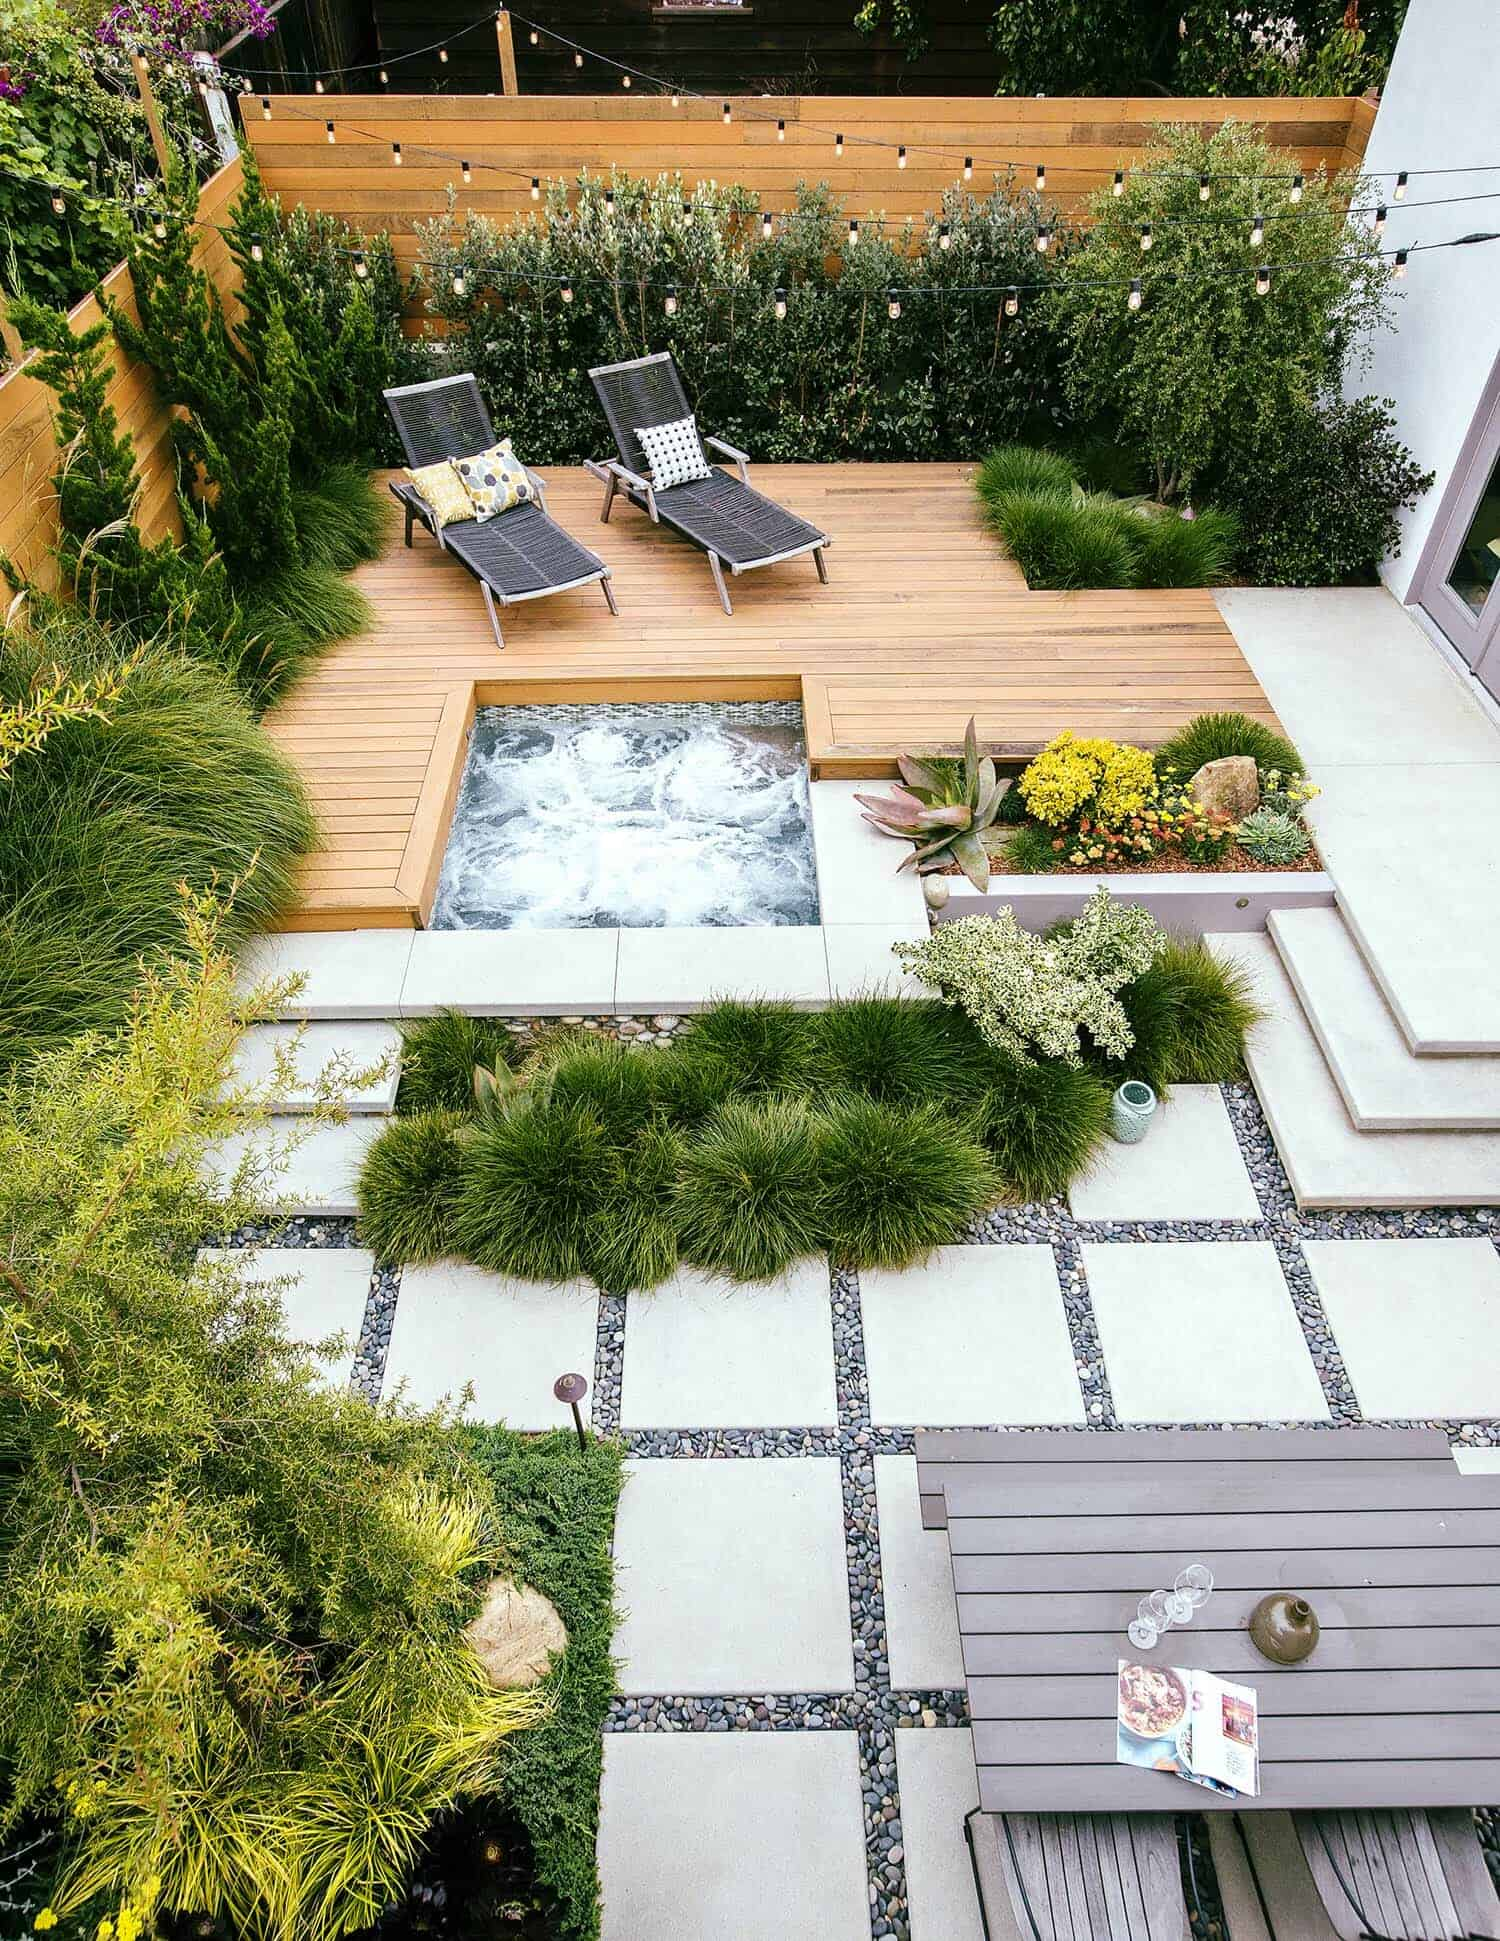 35 Brilliant and inspiring patio ideas for outdoor living ... on Small Backyard Entertainment Area Ideas id=39015